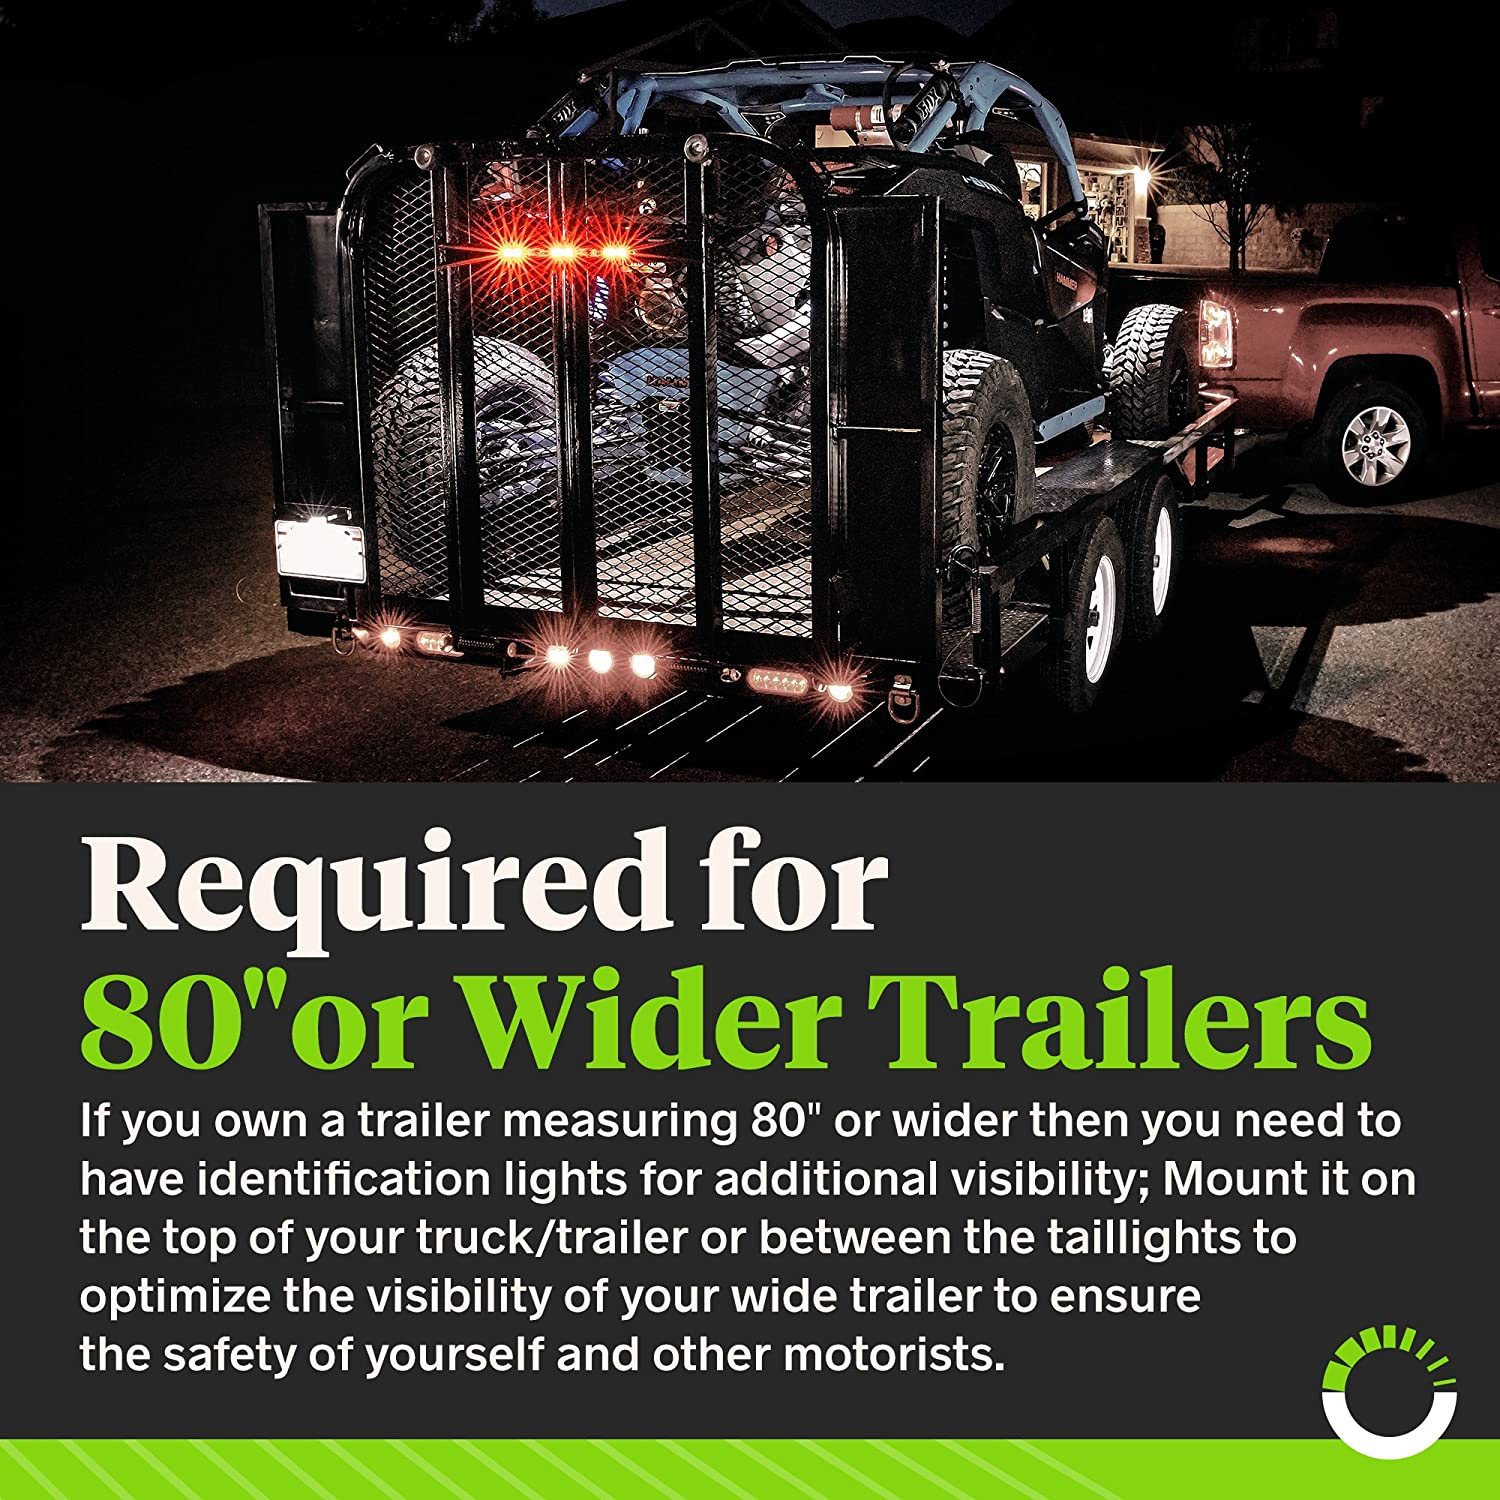 16 12 Led Red Trailer Id Light Bar Brake Sequential Scout 80 Wiring Harness Turn Signal Dot Certified Ip67 Submersible Clearance Marker Tail For Or Wider Trailers Automotive